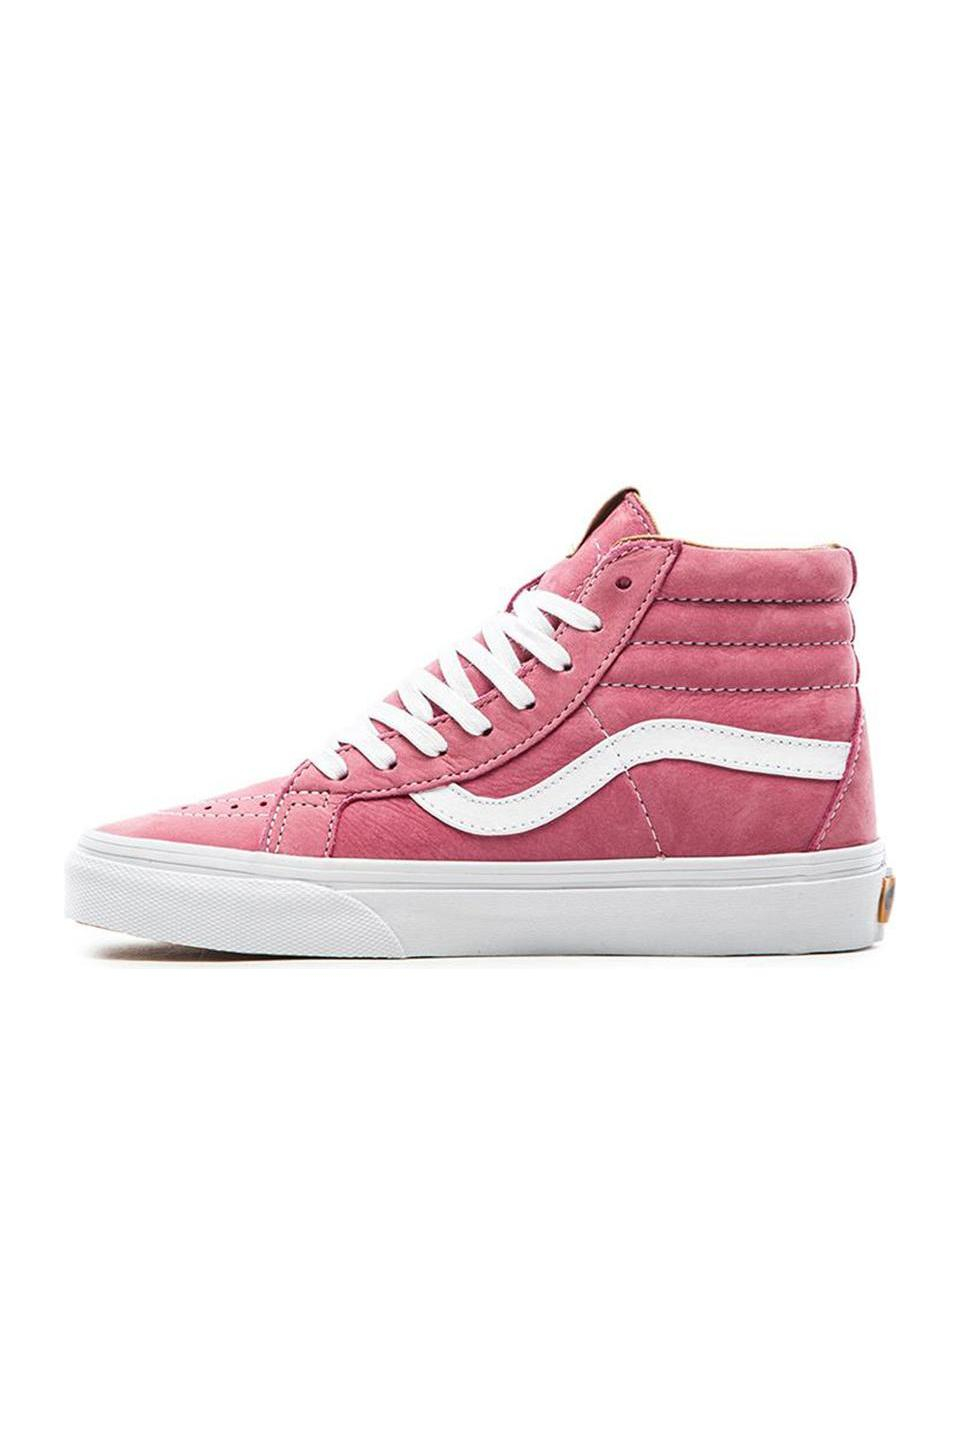 pink vans high tops mens